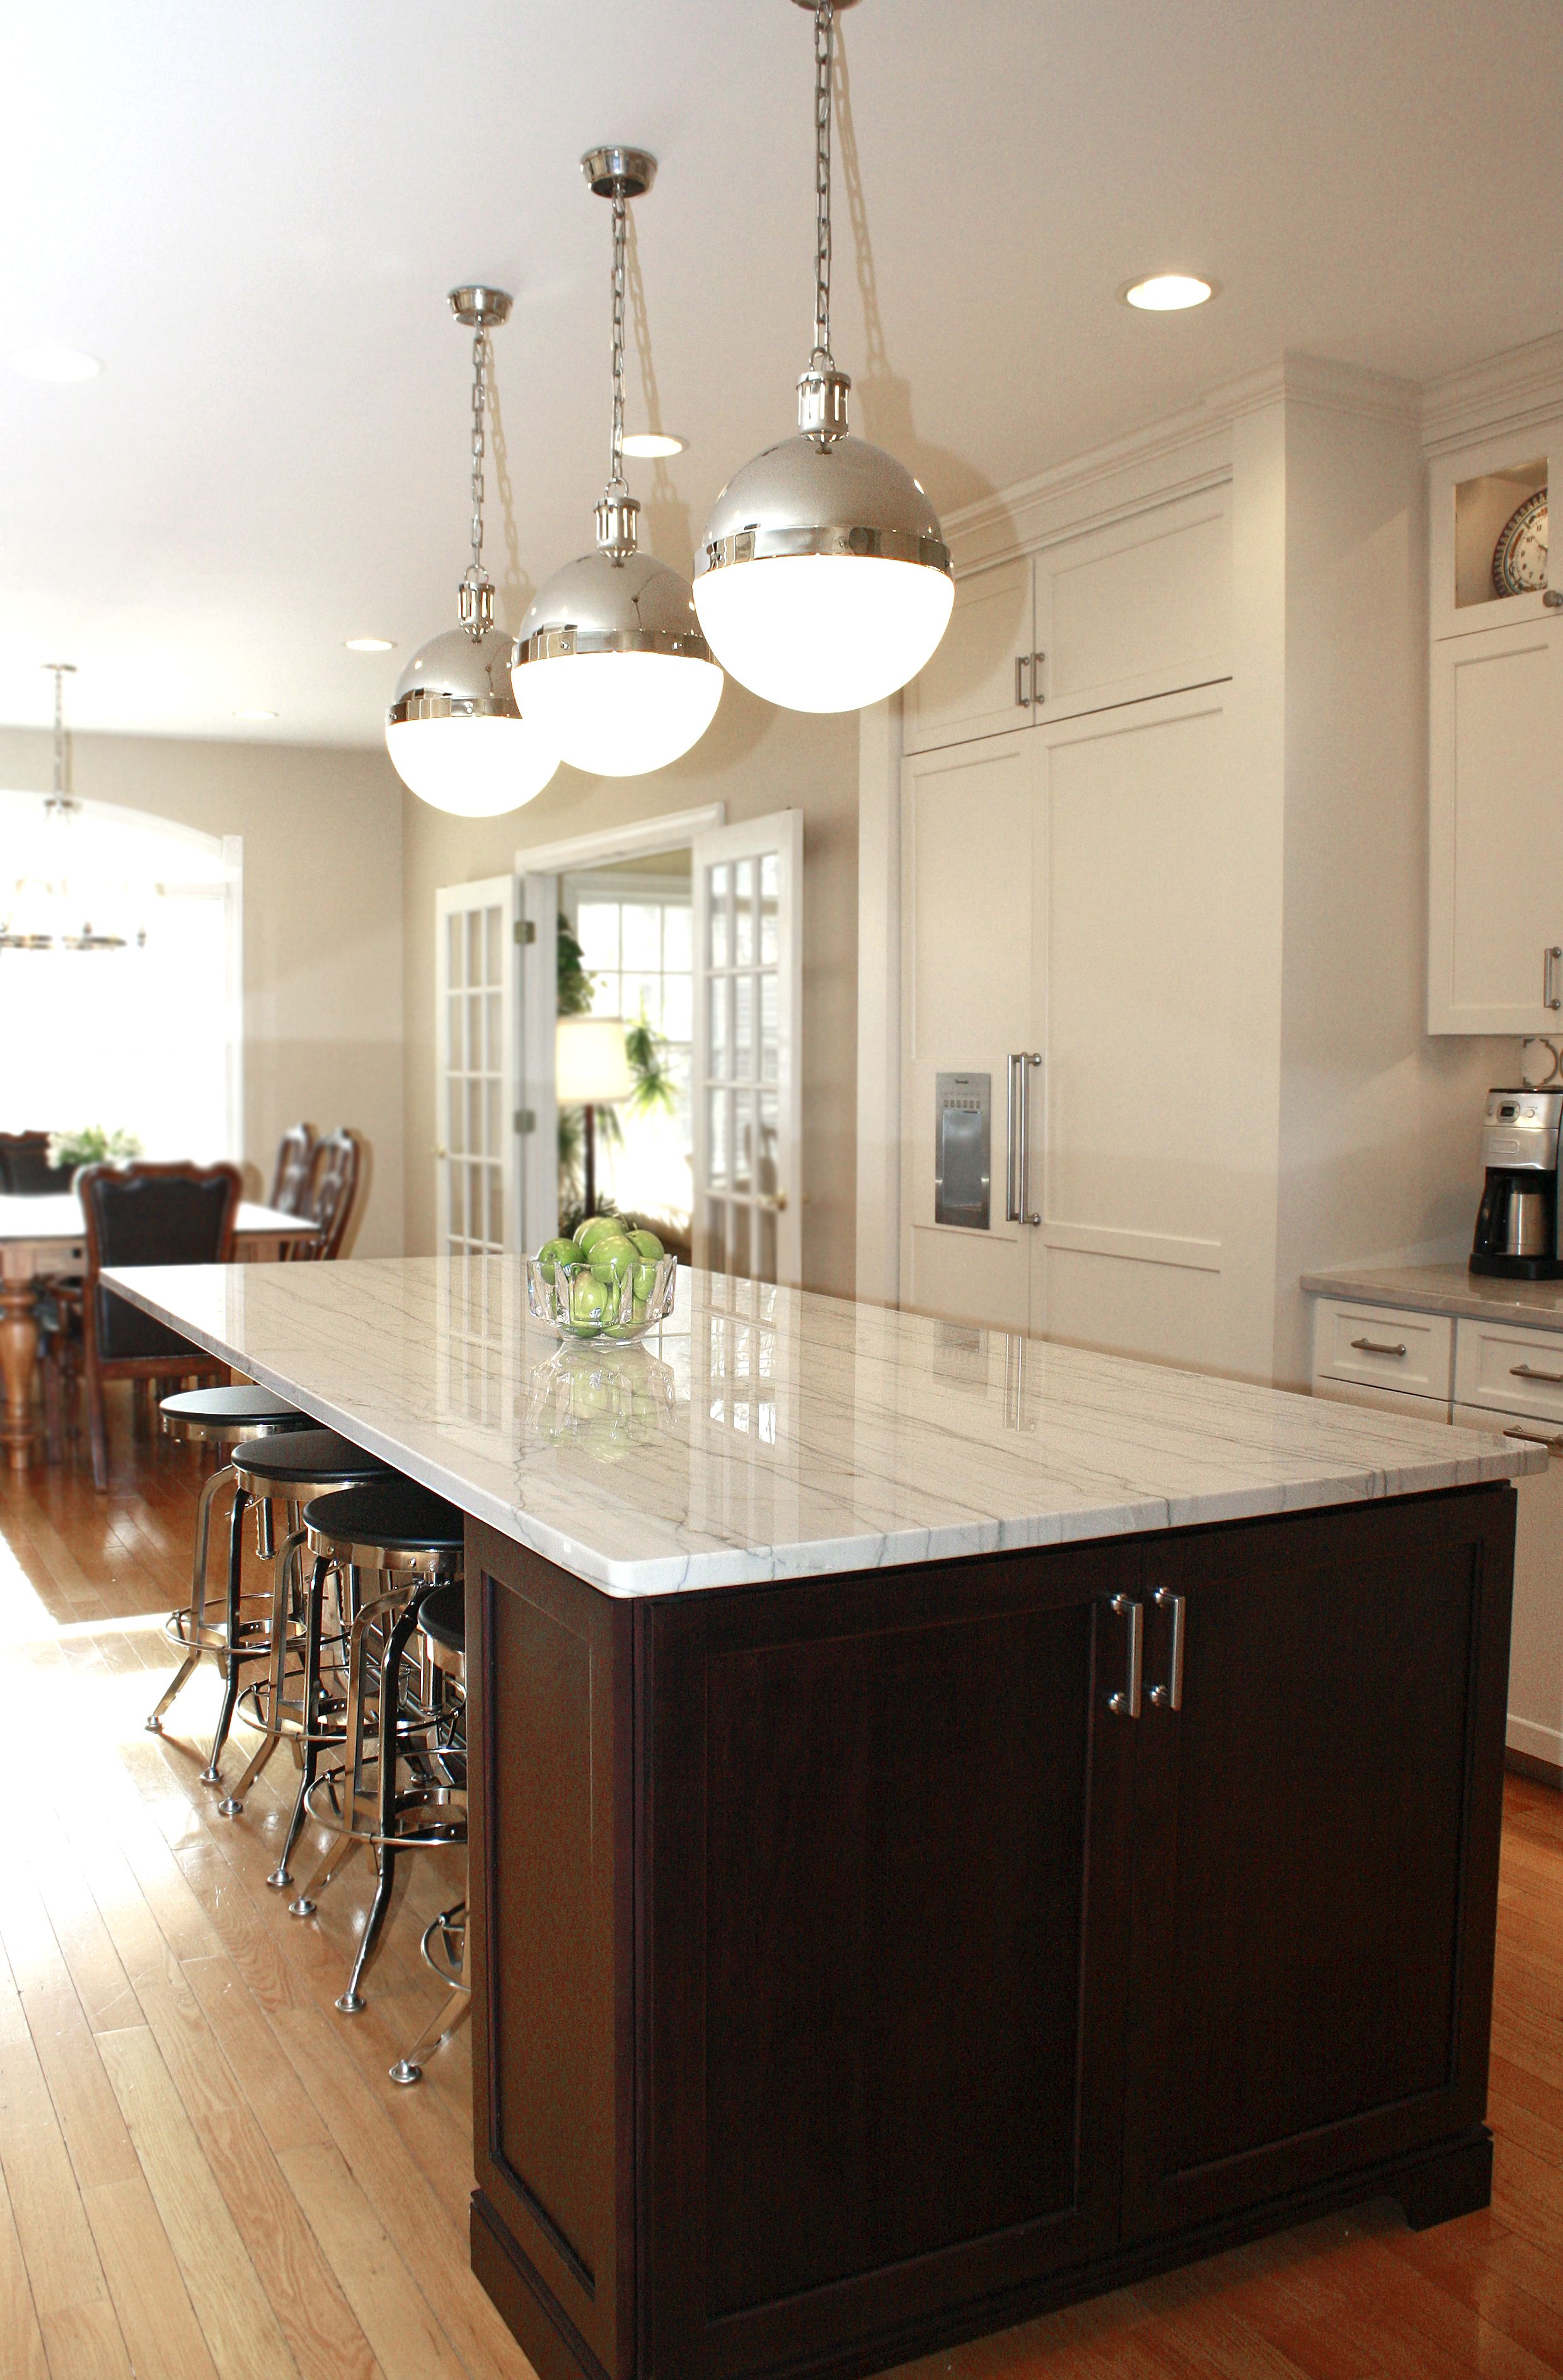 Discount Granite Countertops Nj White Macaubas Quartzite Like Marble Dream Kitchen